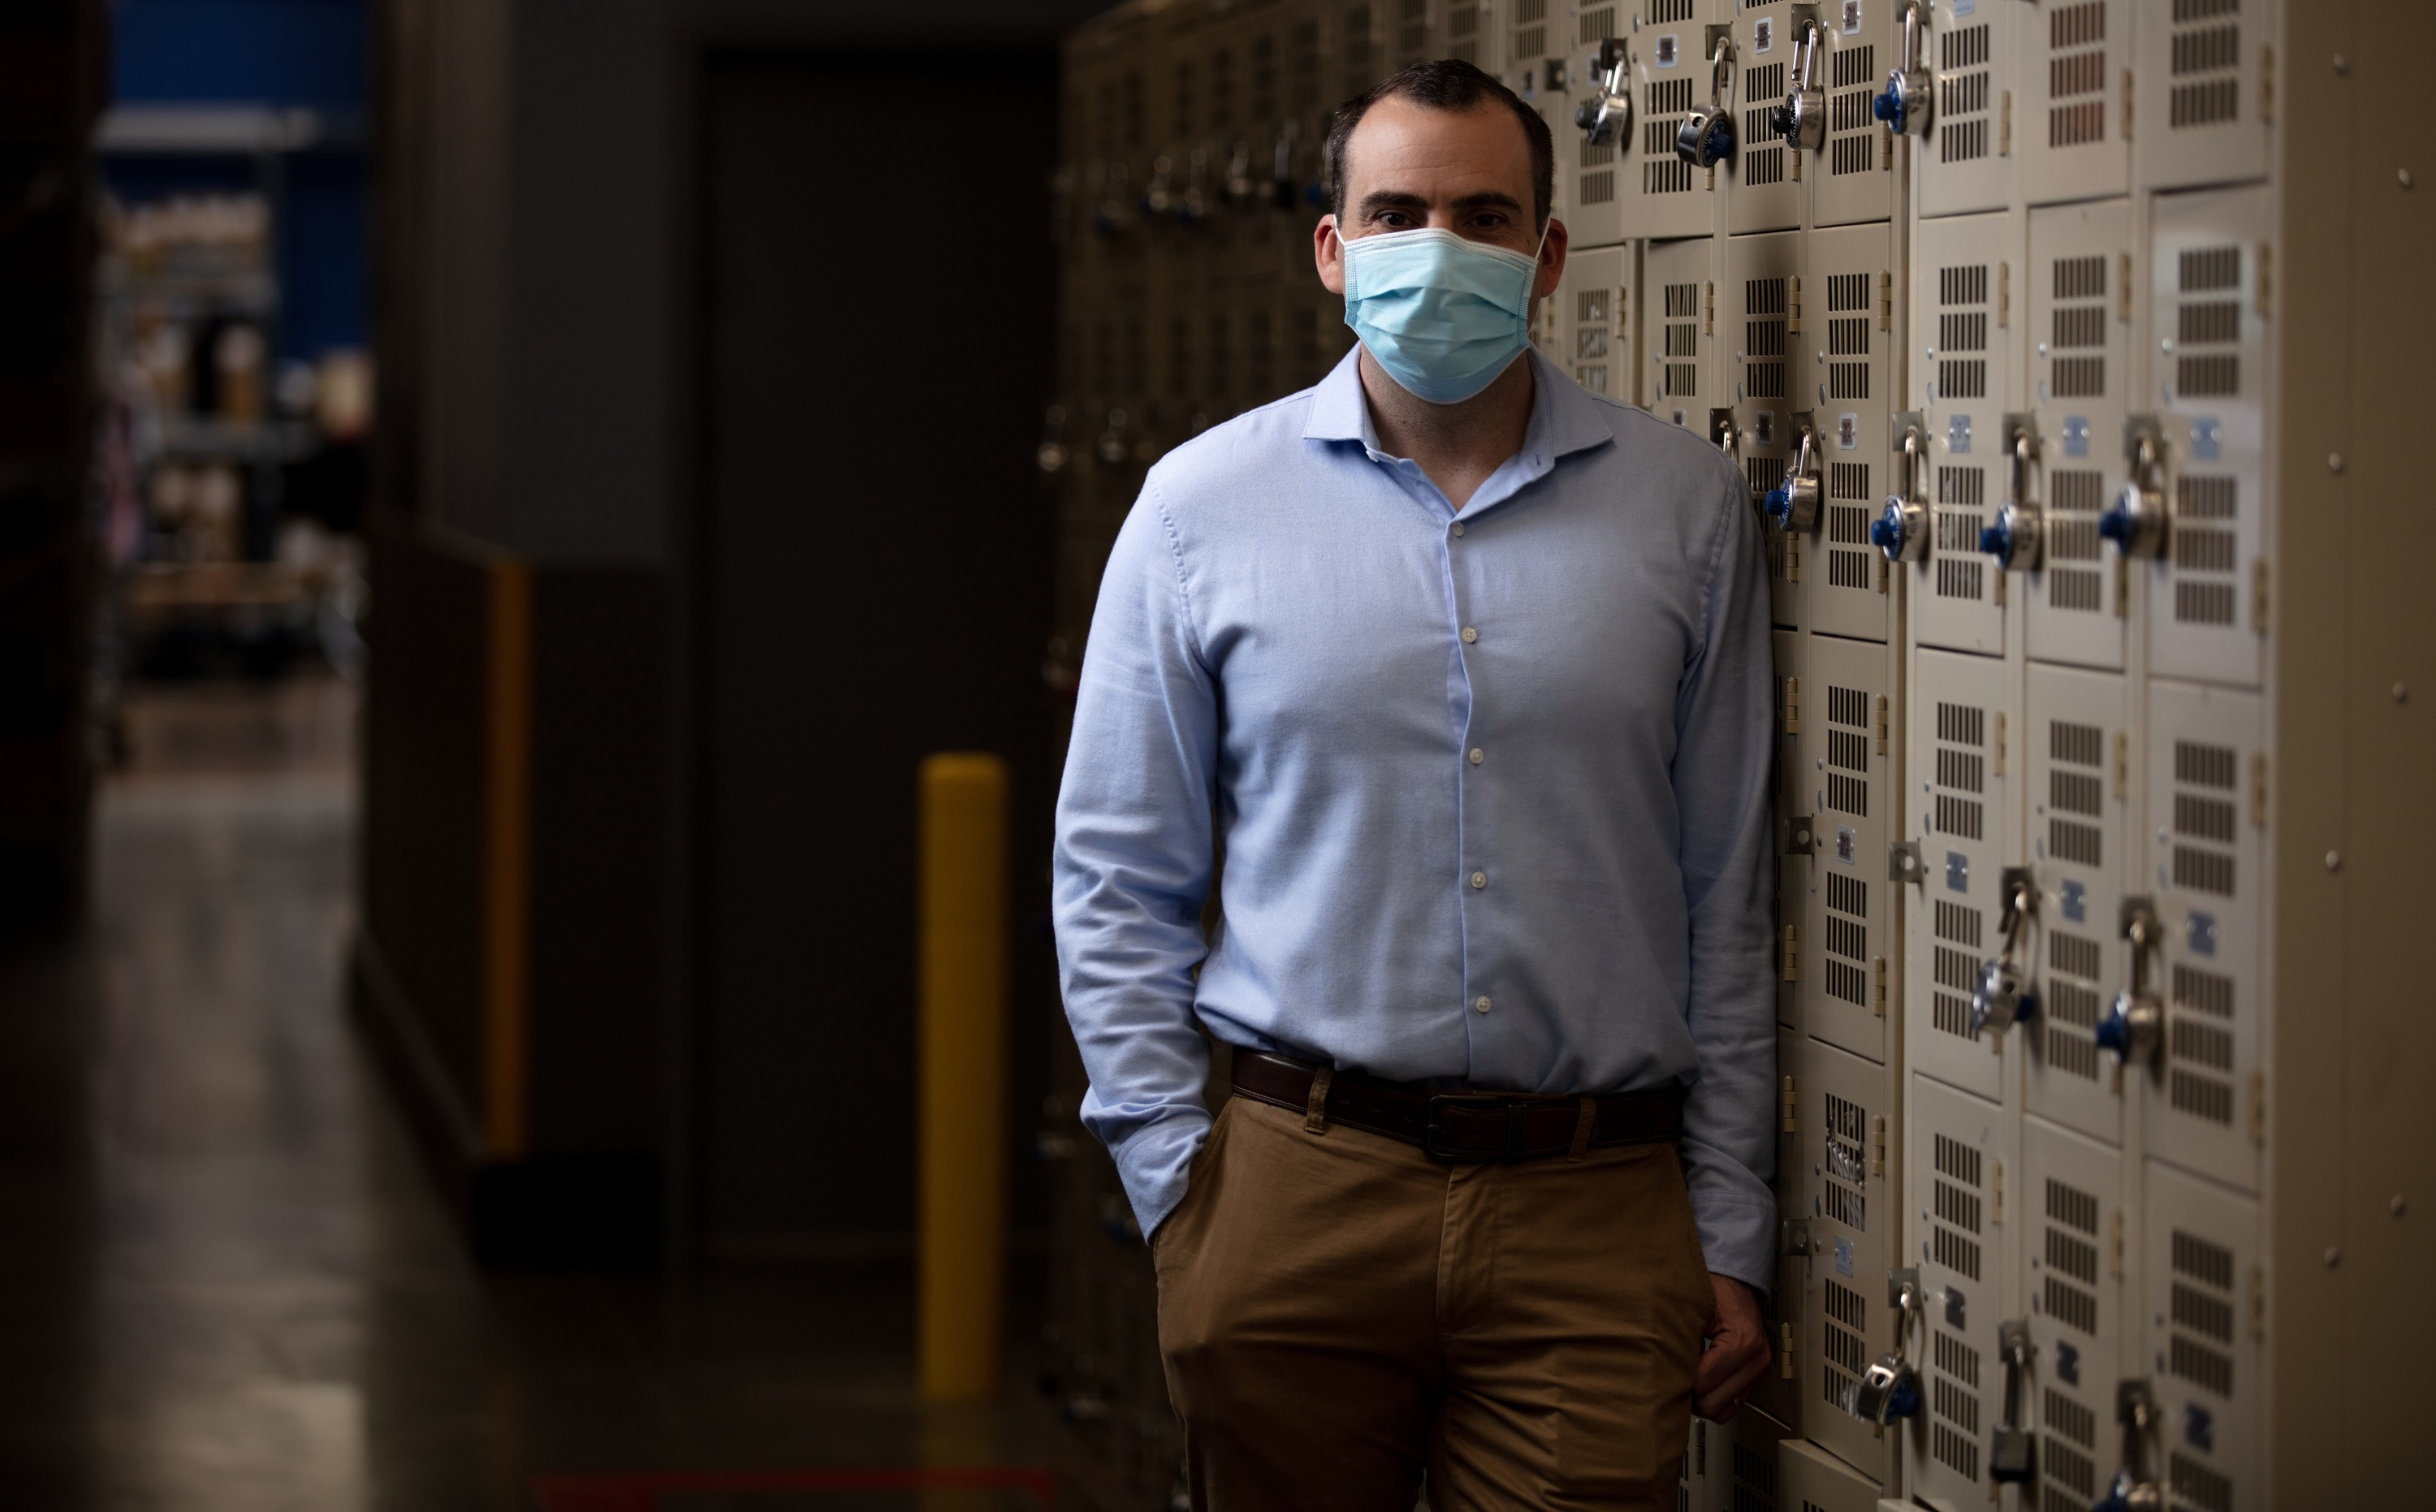 Drew Holler, senior vice president of associate experience and operations, wears a mask next to lockers